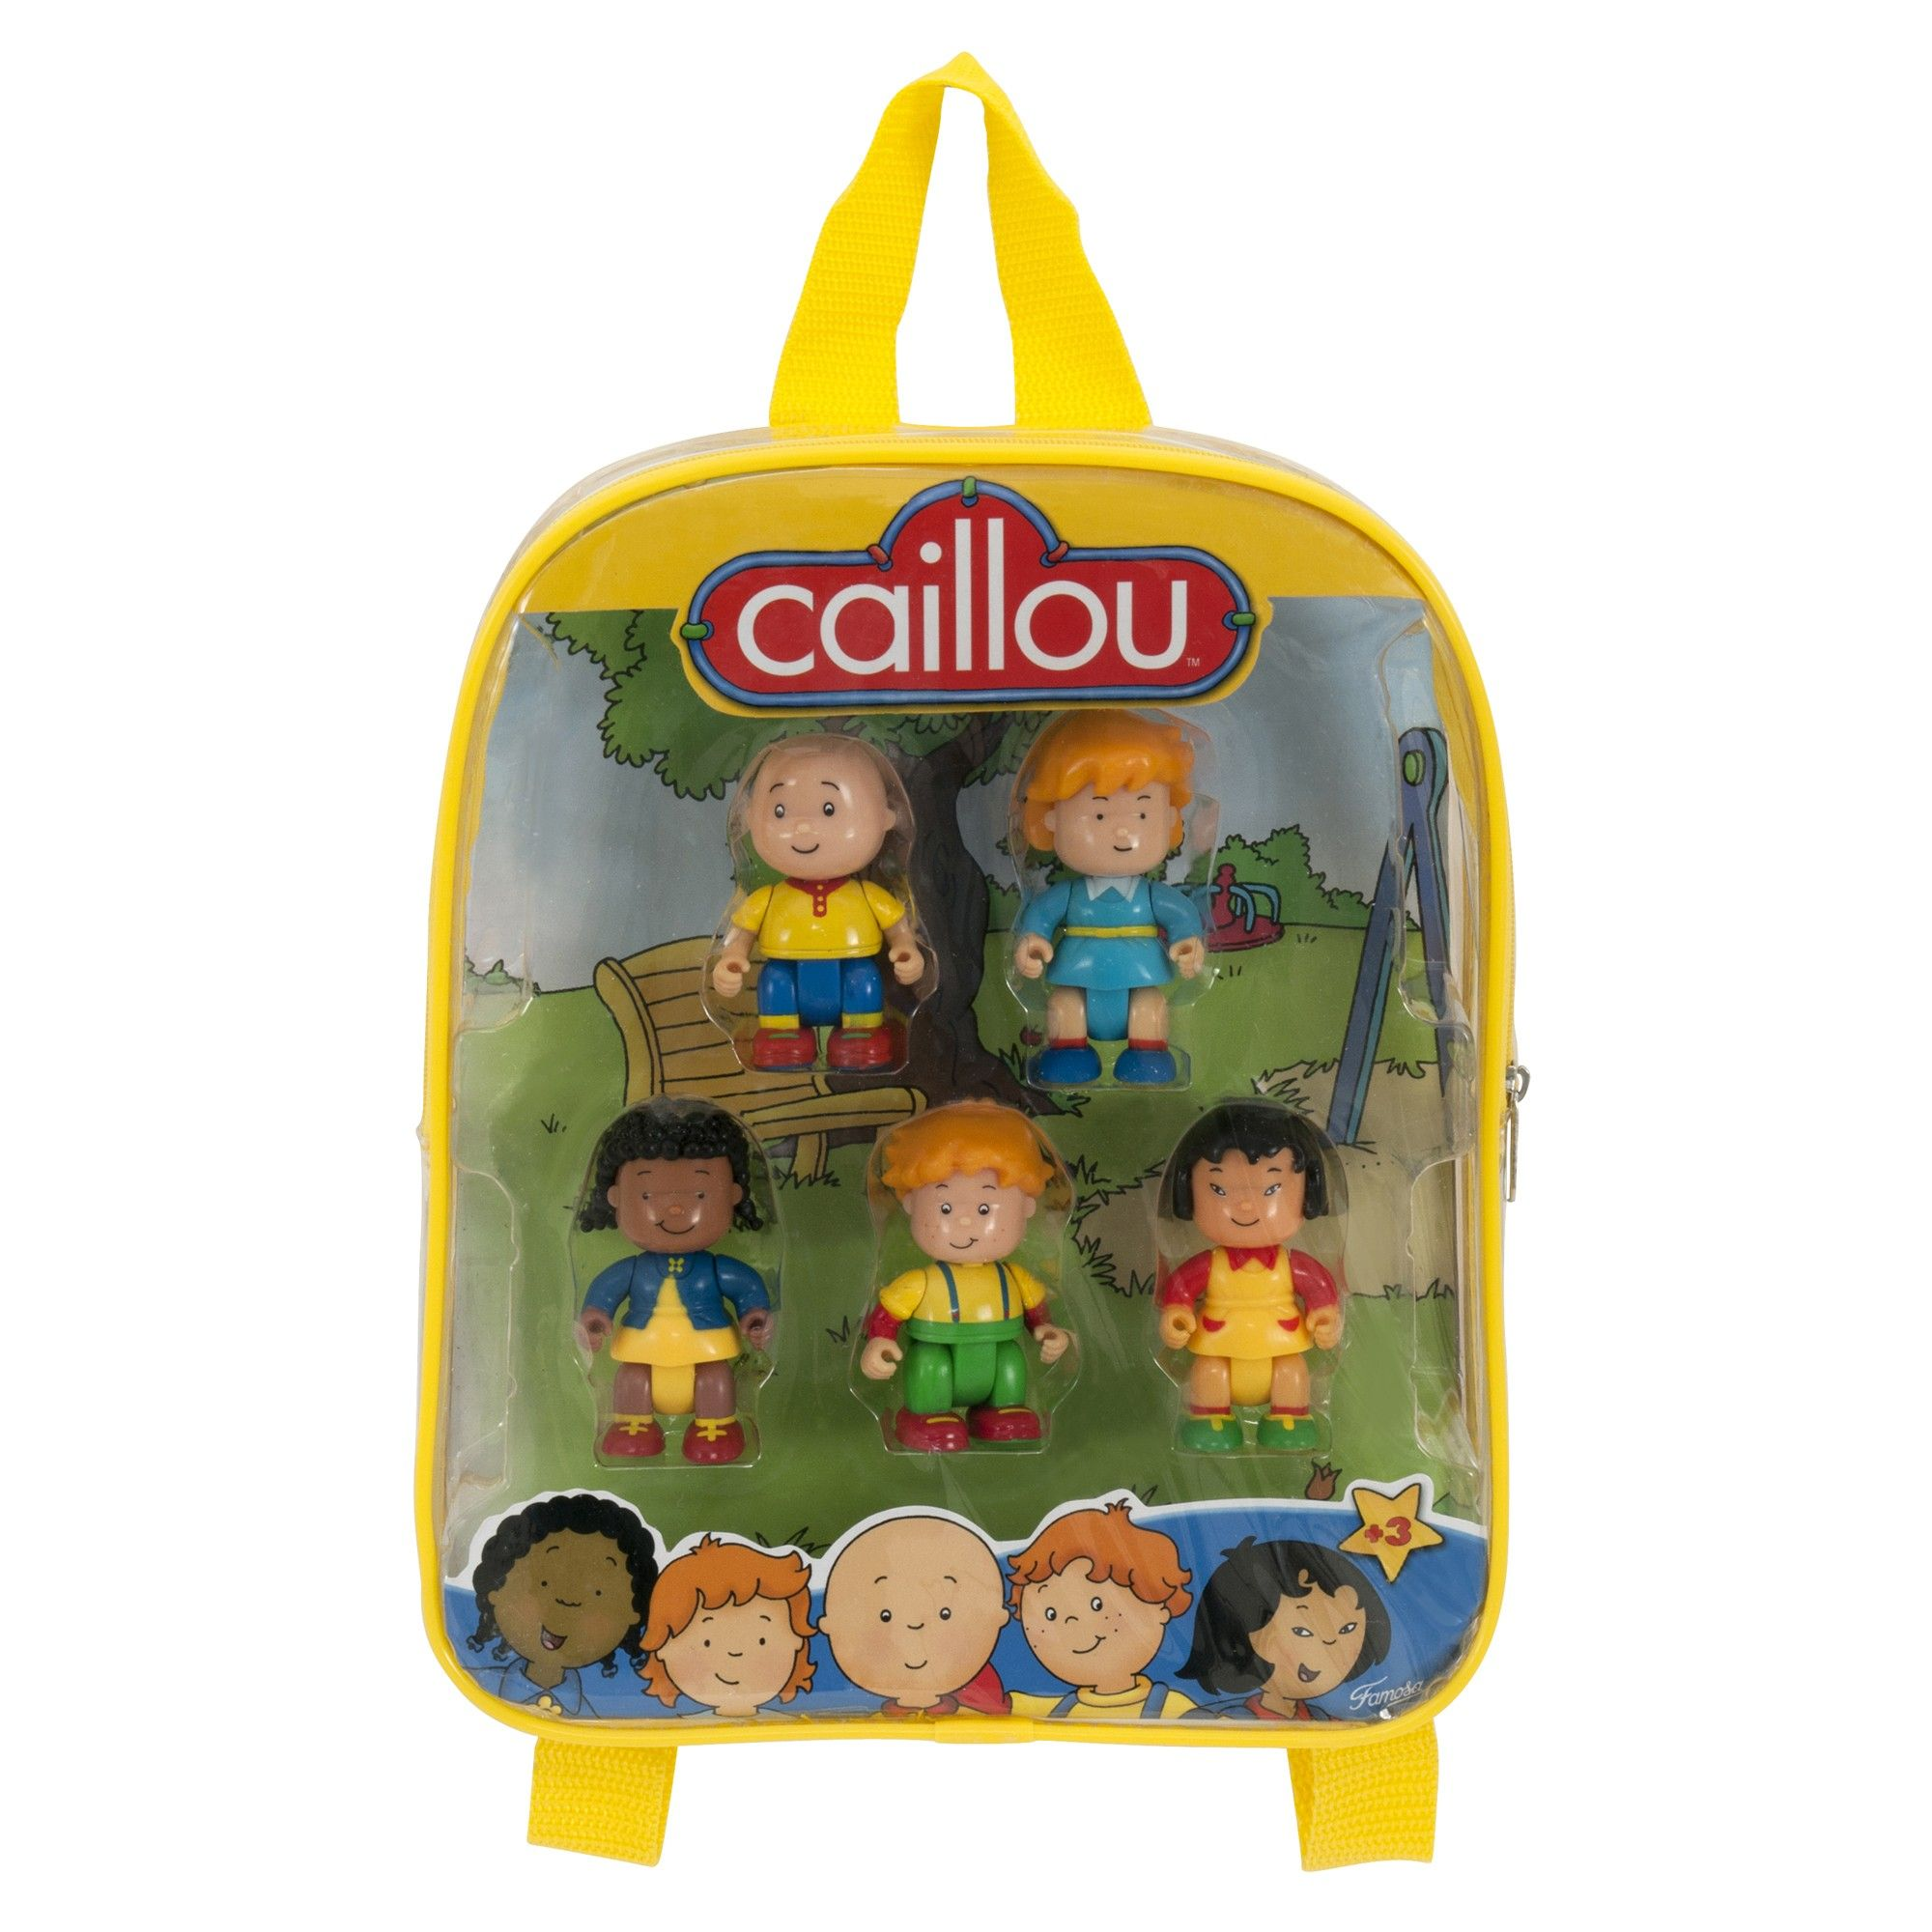 Caillou Mini Backpack From Pbs Kids Shop